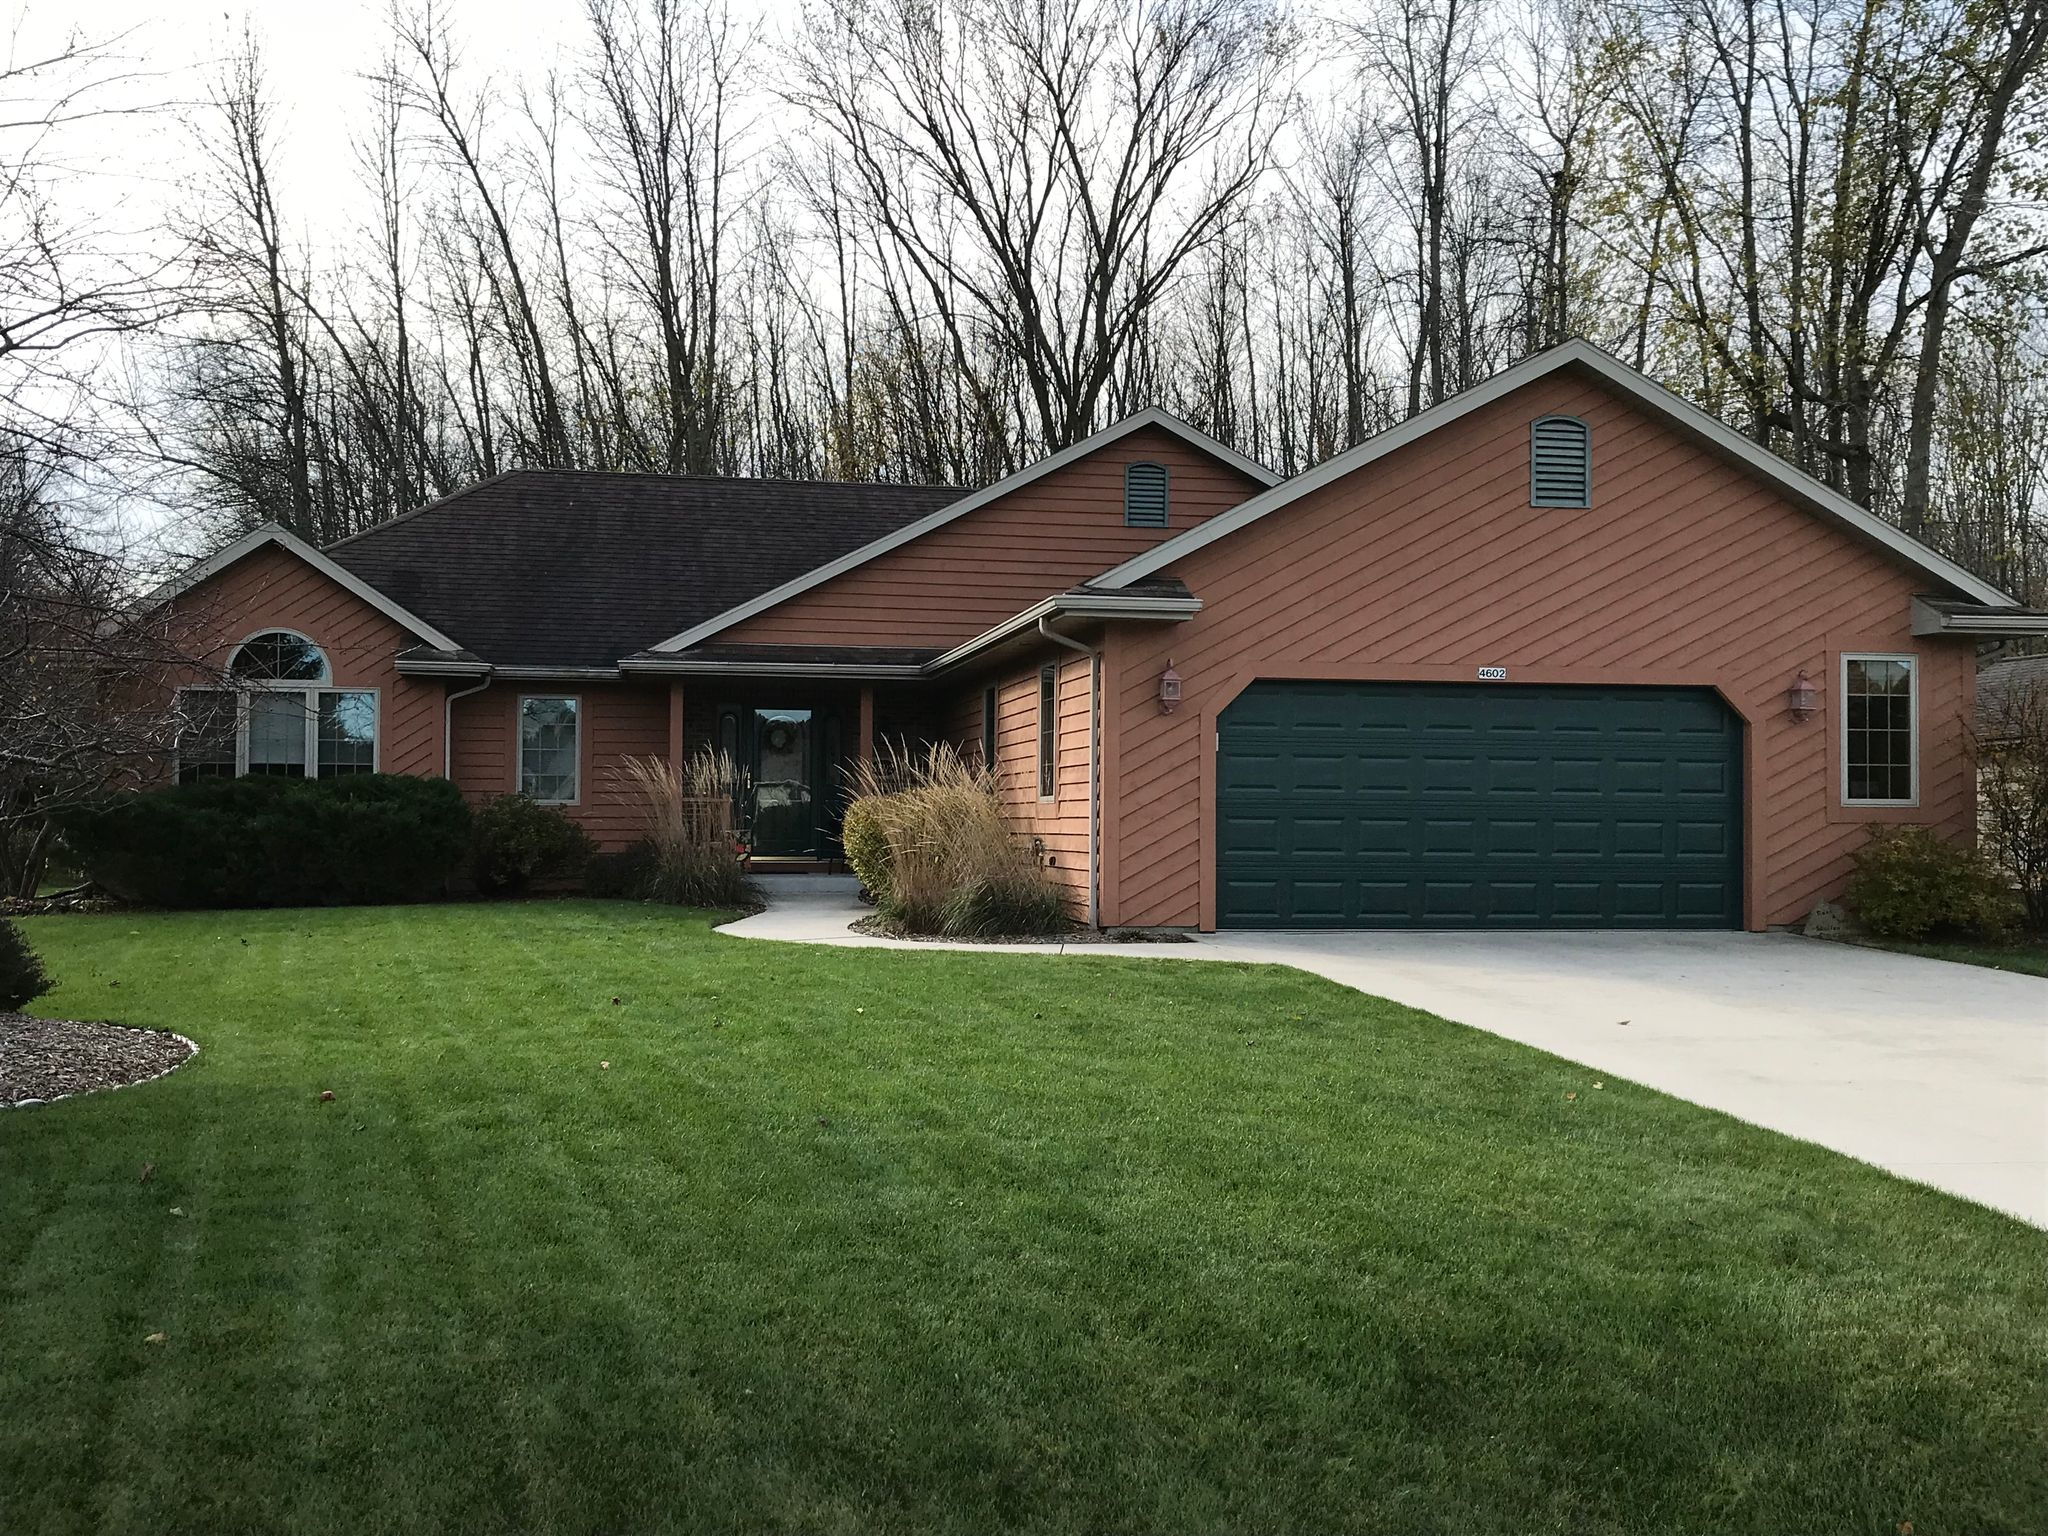 4602 Douglas Fir Ln, Sheboygan, WI 53083 - Estimate and Home Details ...